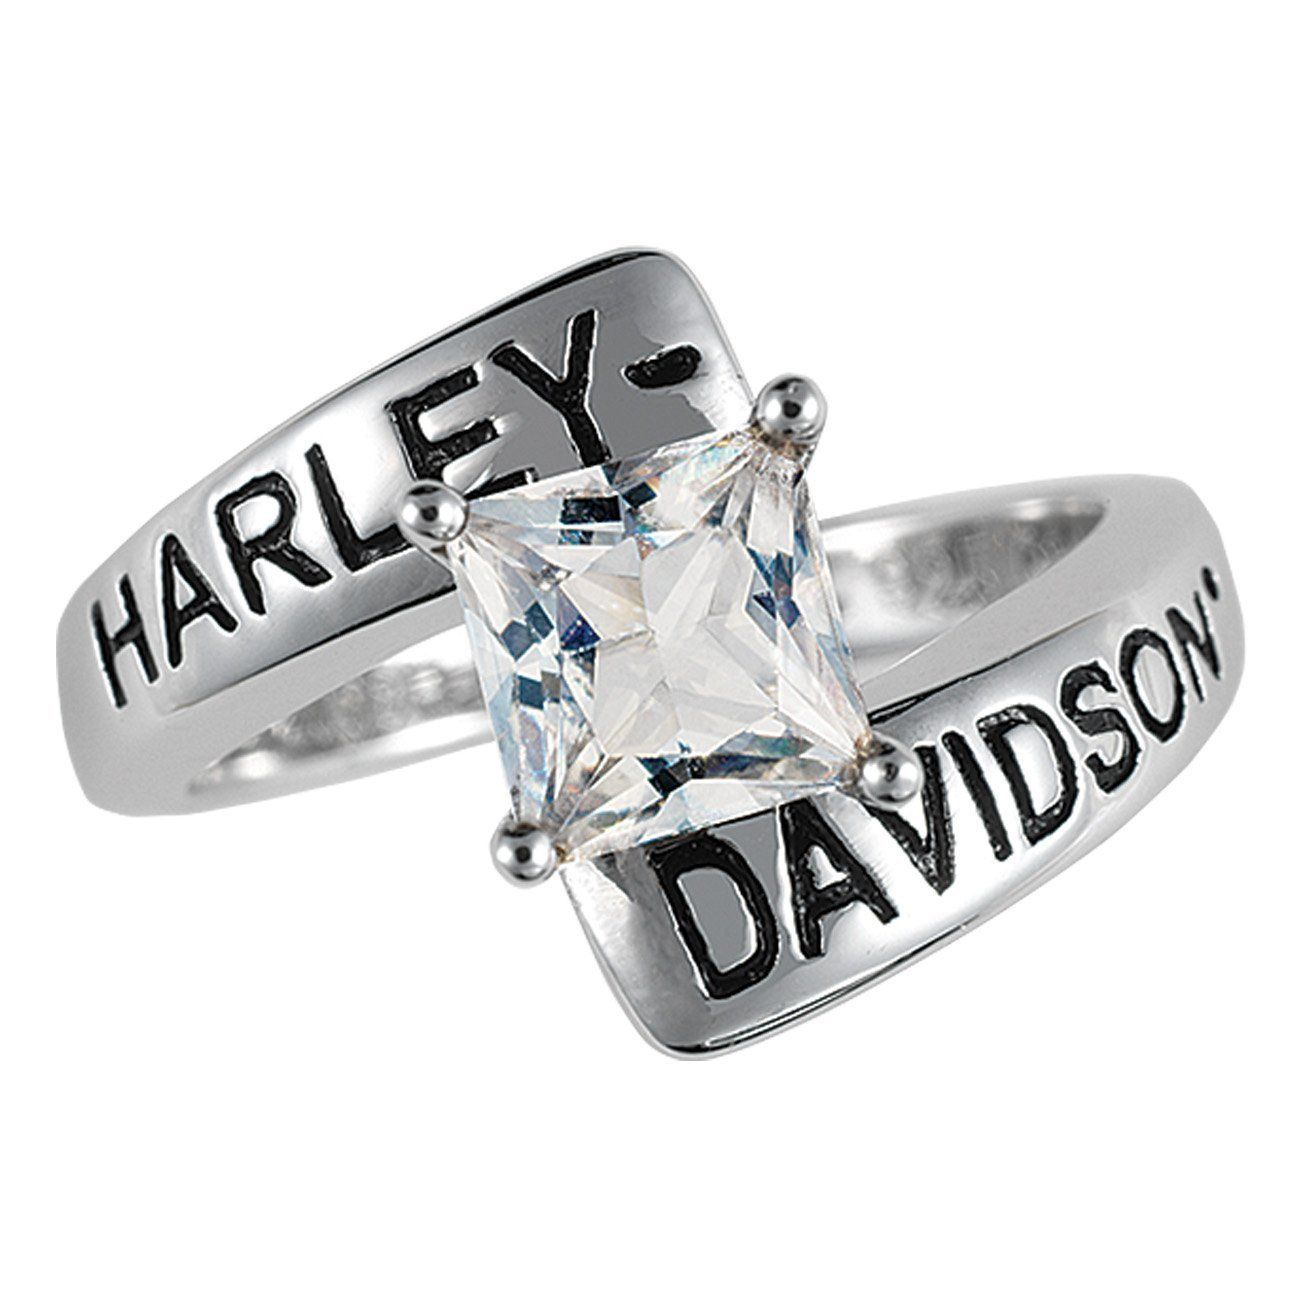 harley davidson wedding rings harley davidson wedding rings Collection Harley Davidson Rings Harley